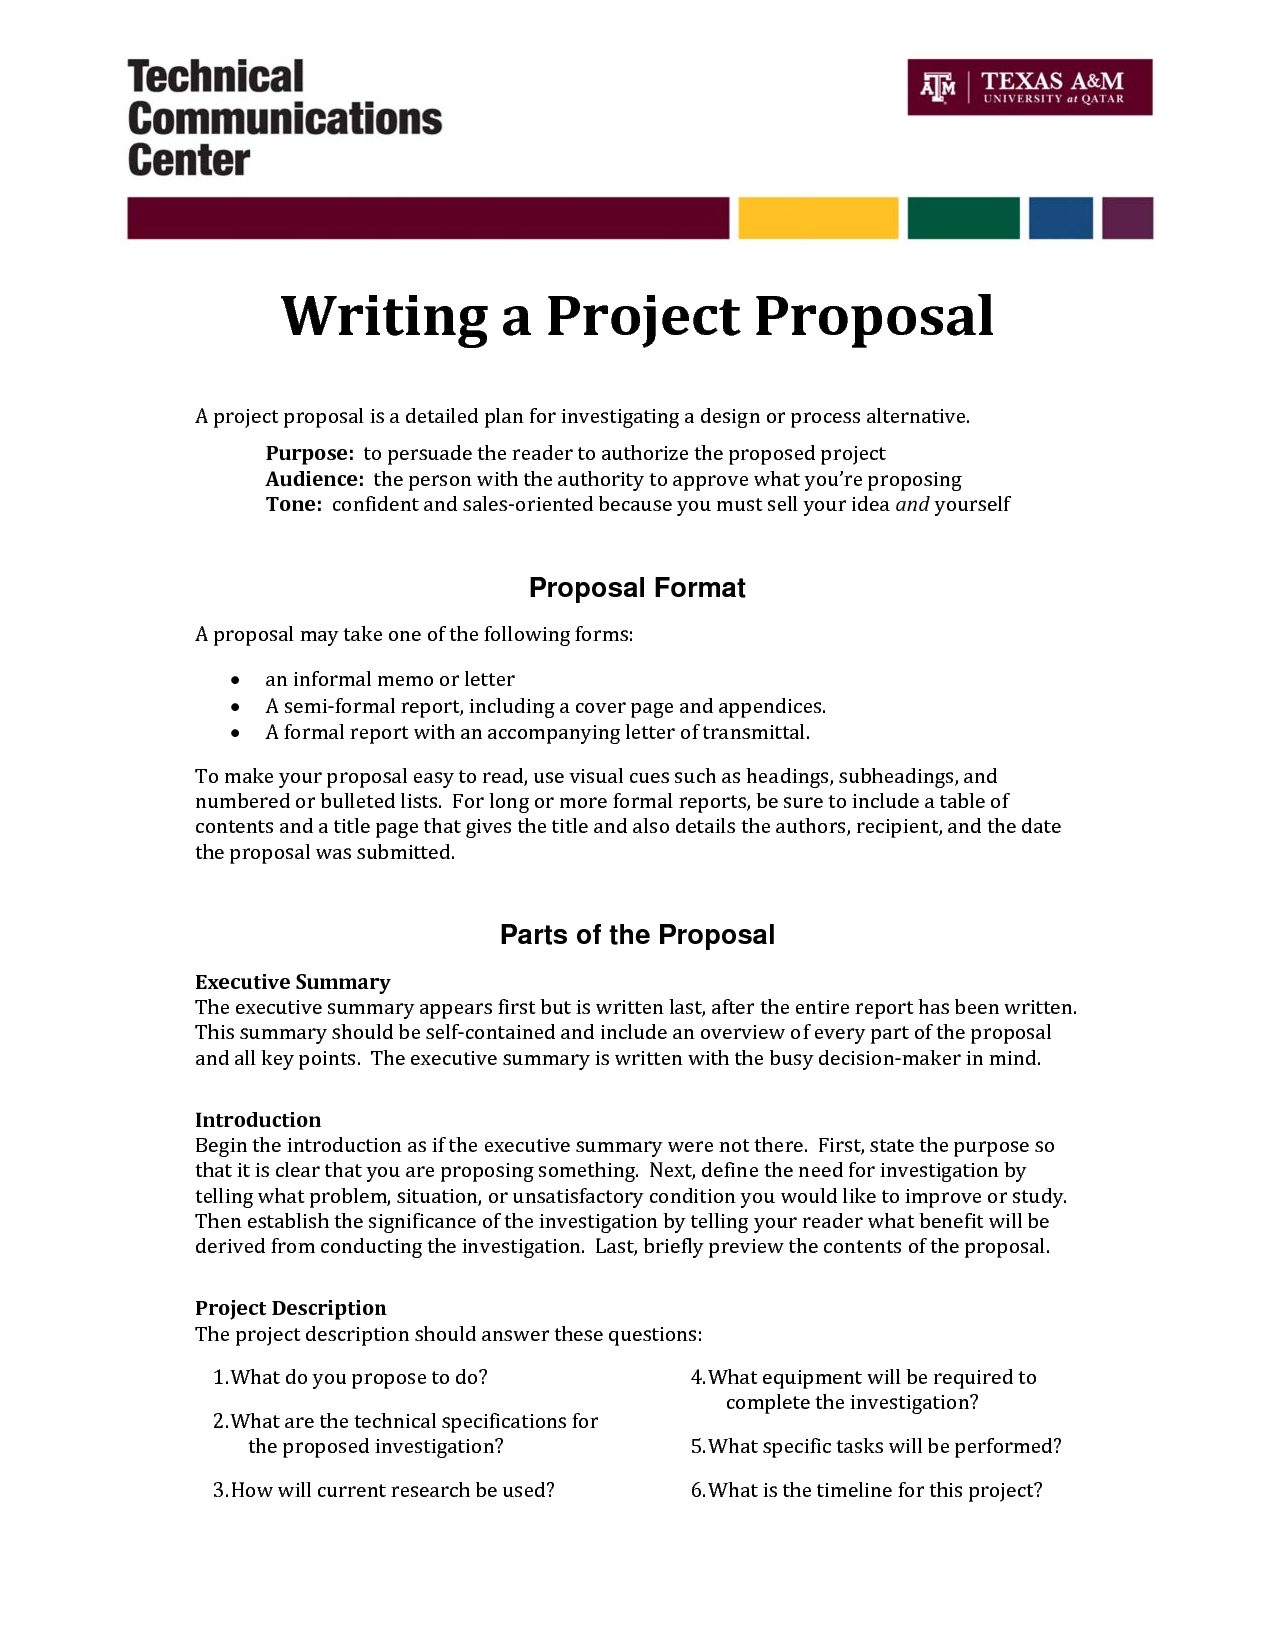 How to Write an Eagle Scout Leadership Project Proposal